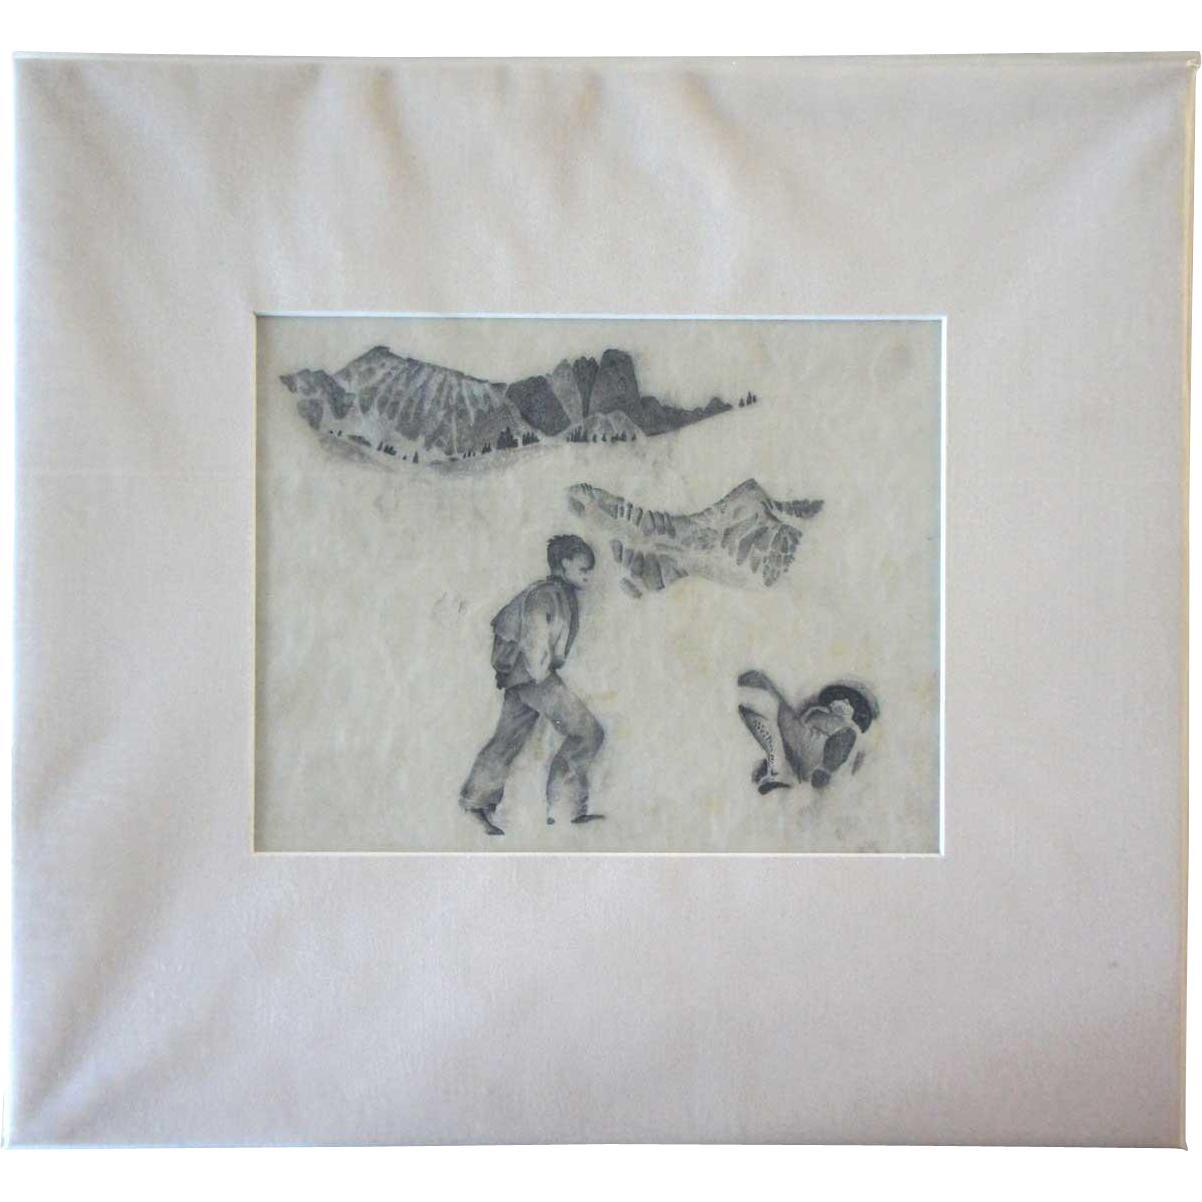 WILLIAM HENRY TRAHER Drawing on Paper, Mountain Climber Studies